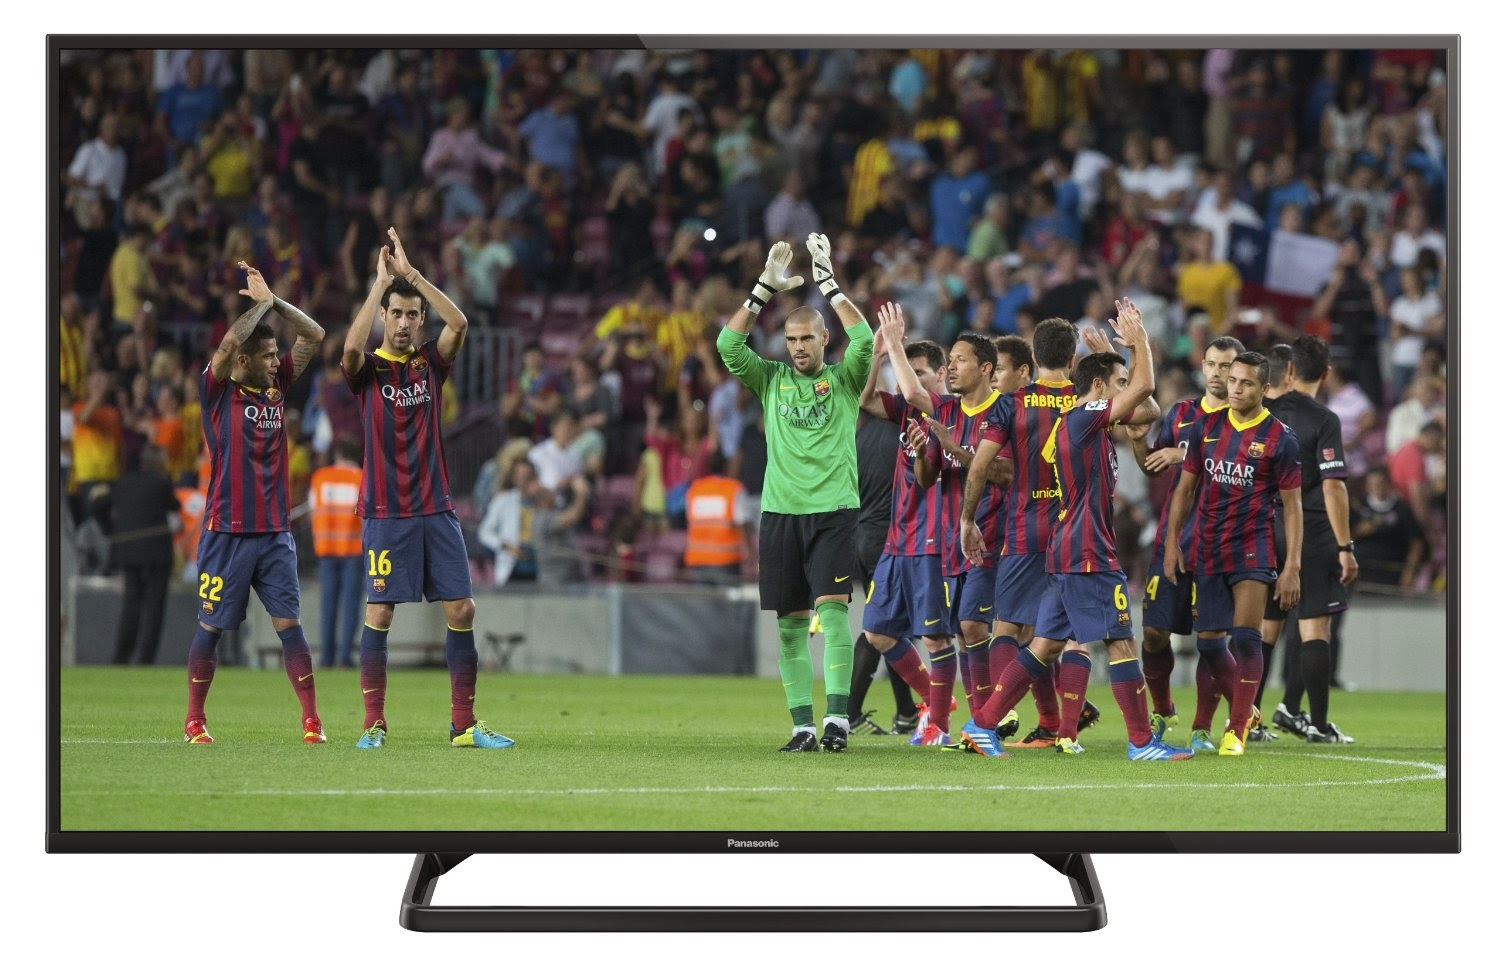 Panasonic TX-42A400B 42-inch Widescreen 1080p Full HD Slim LED TV